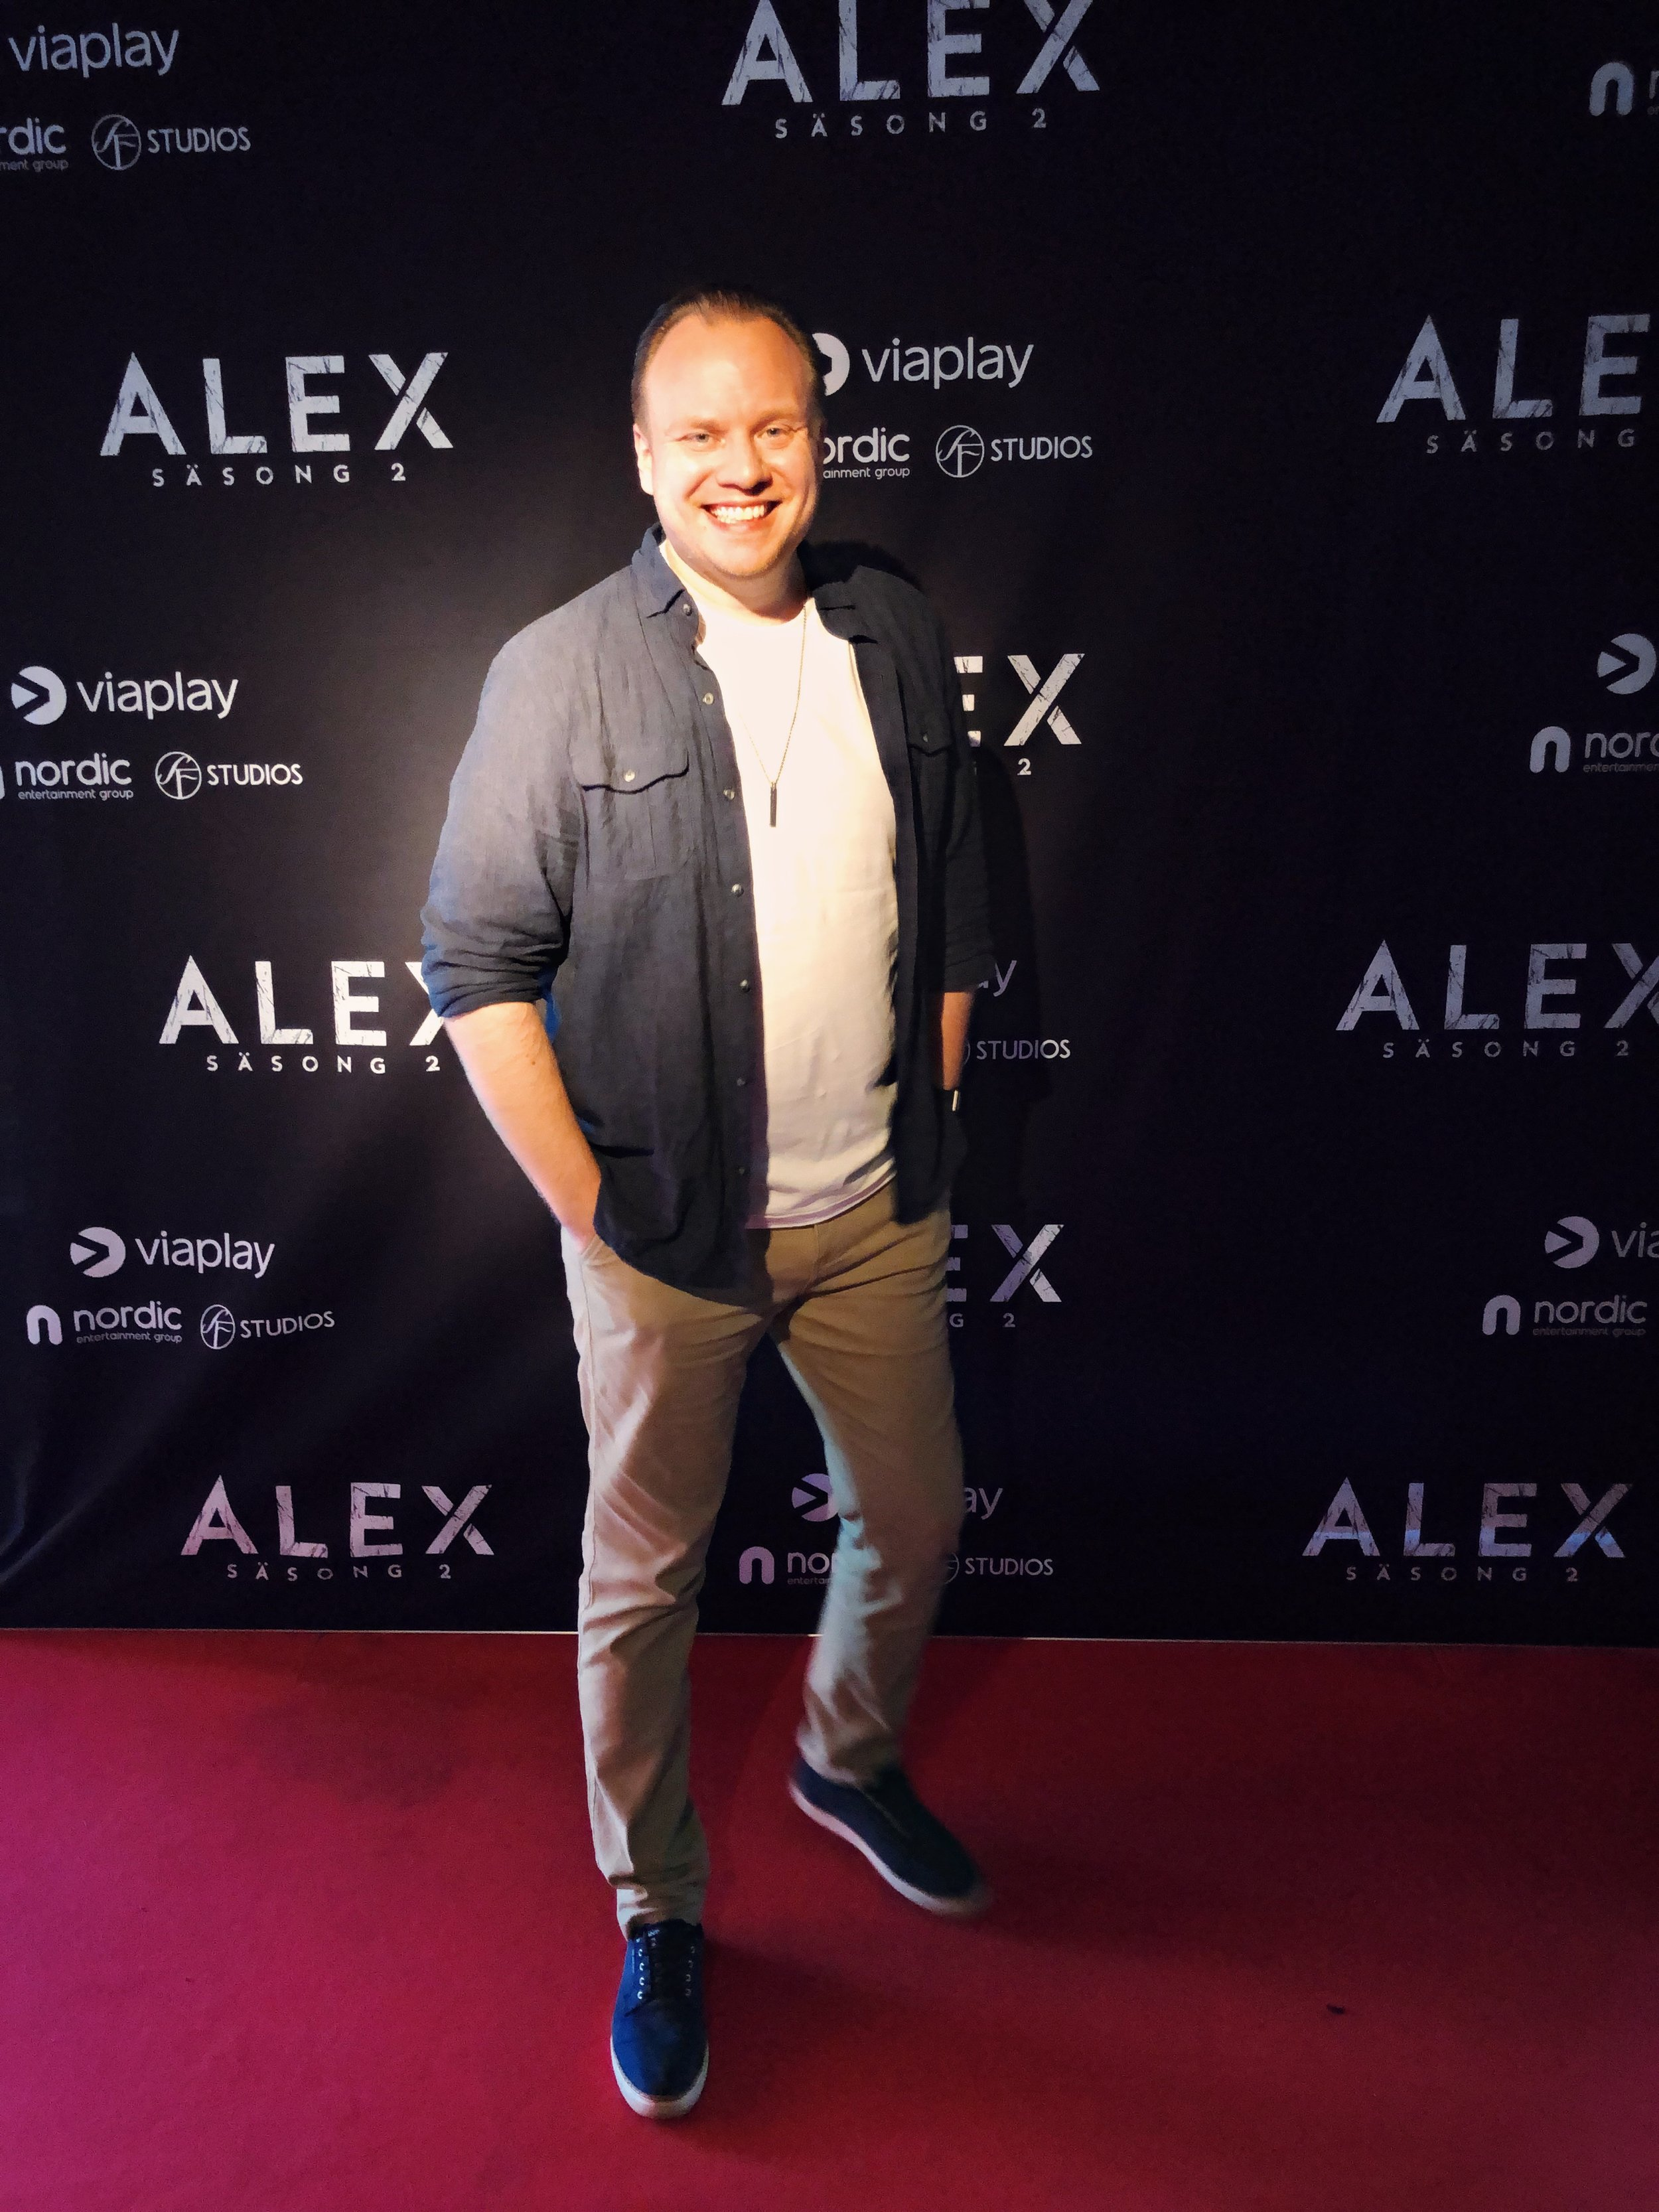 Mikael Cross at the red carpet premiere of ALEX season 2.